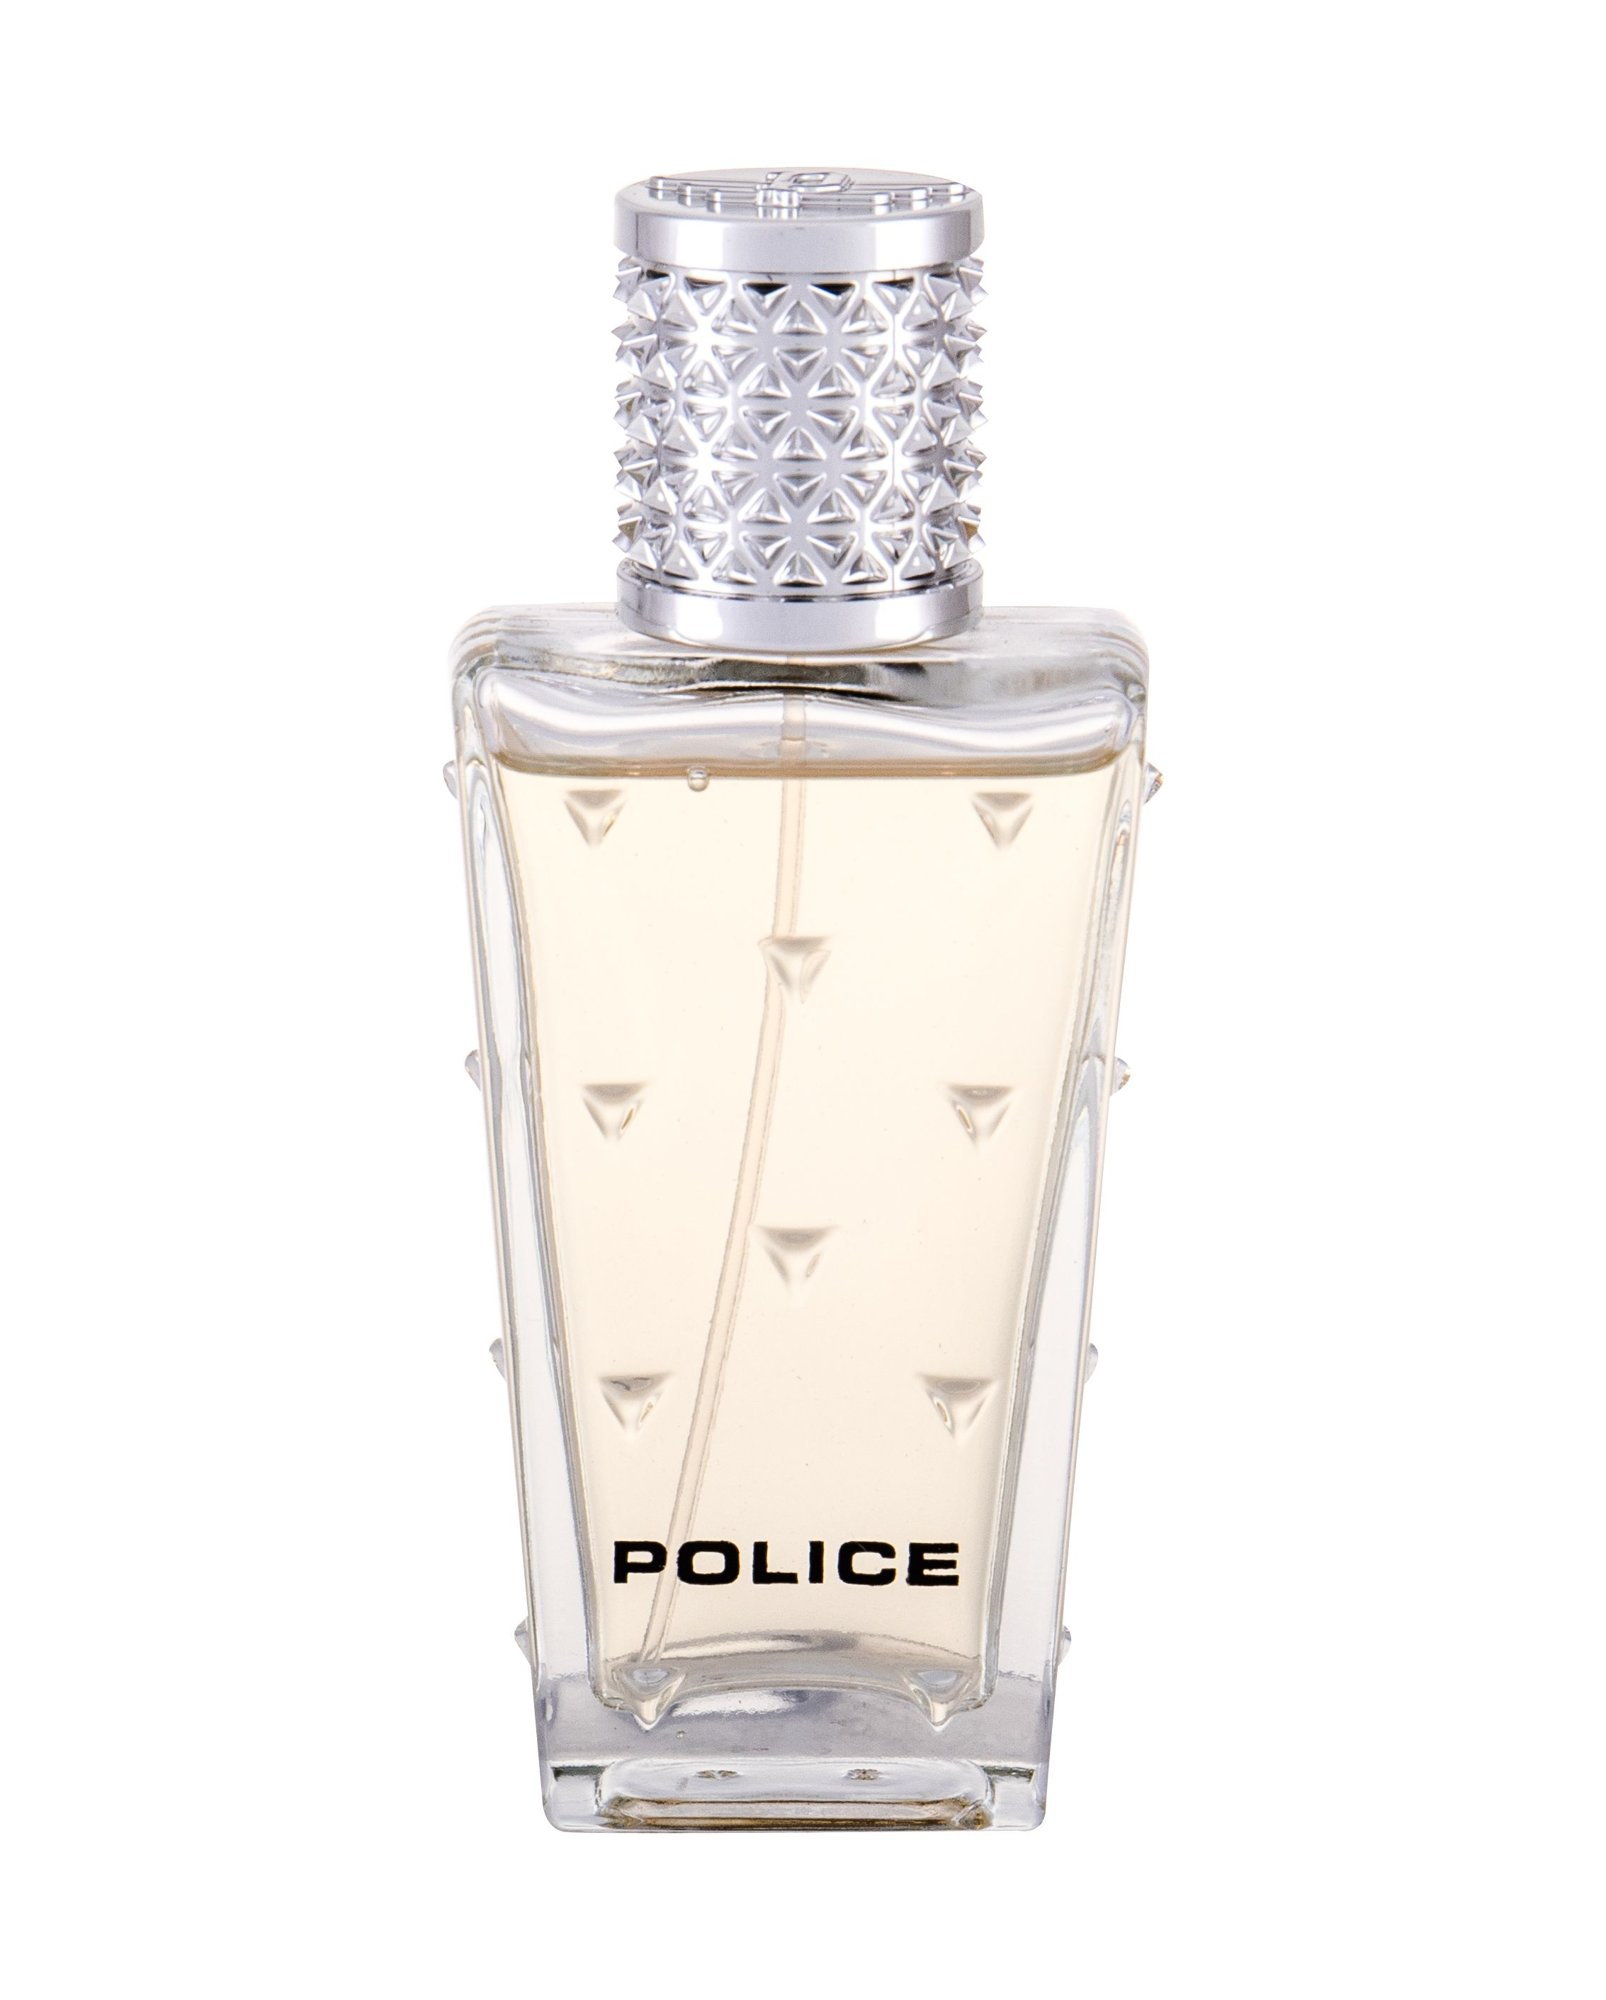 Police The Legendary Scent Eau de Parfum 30ml